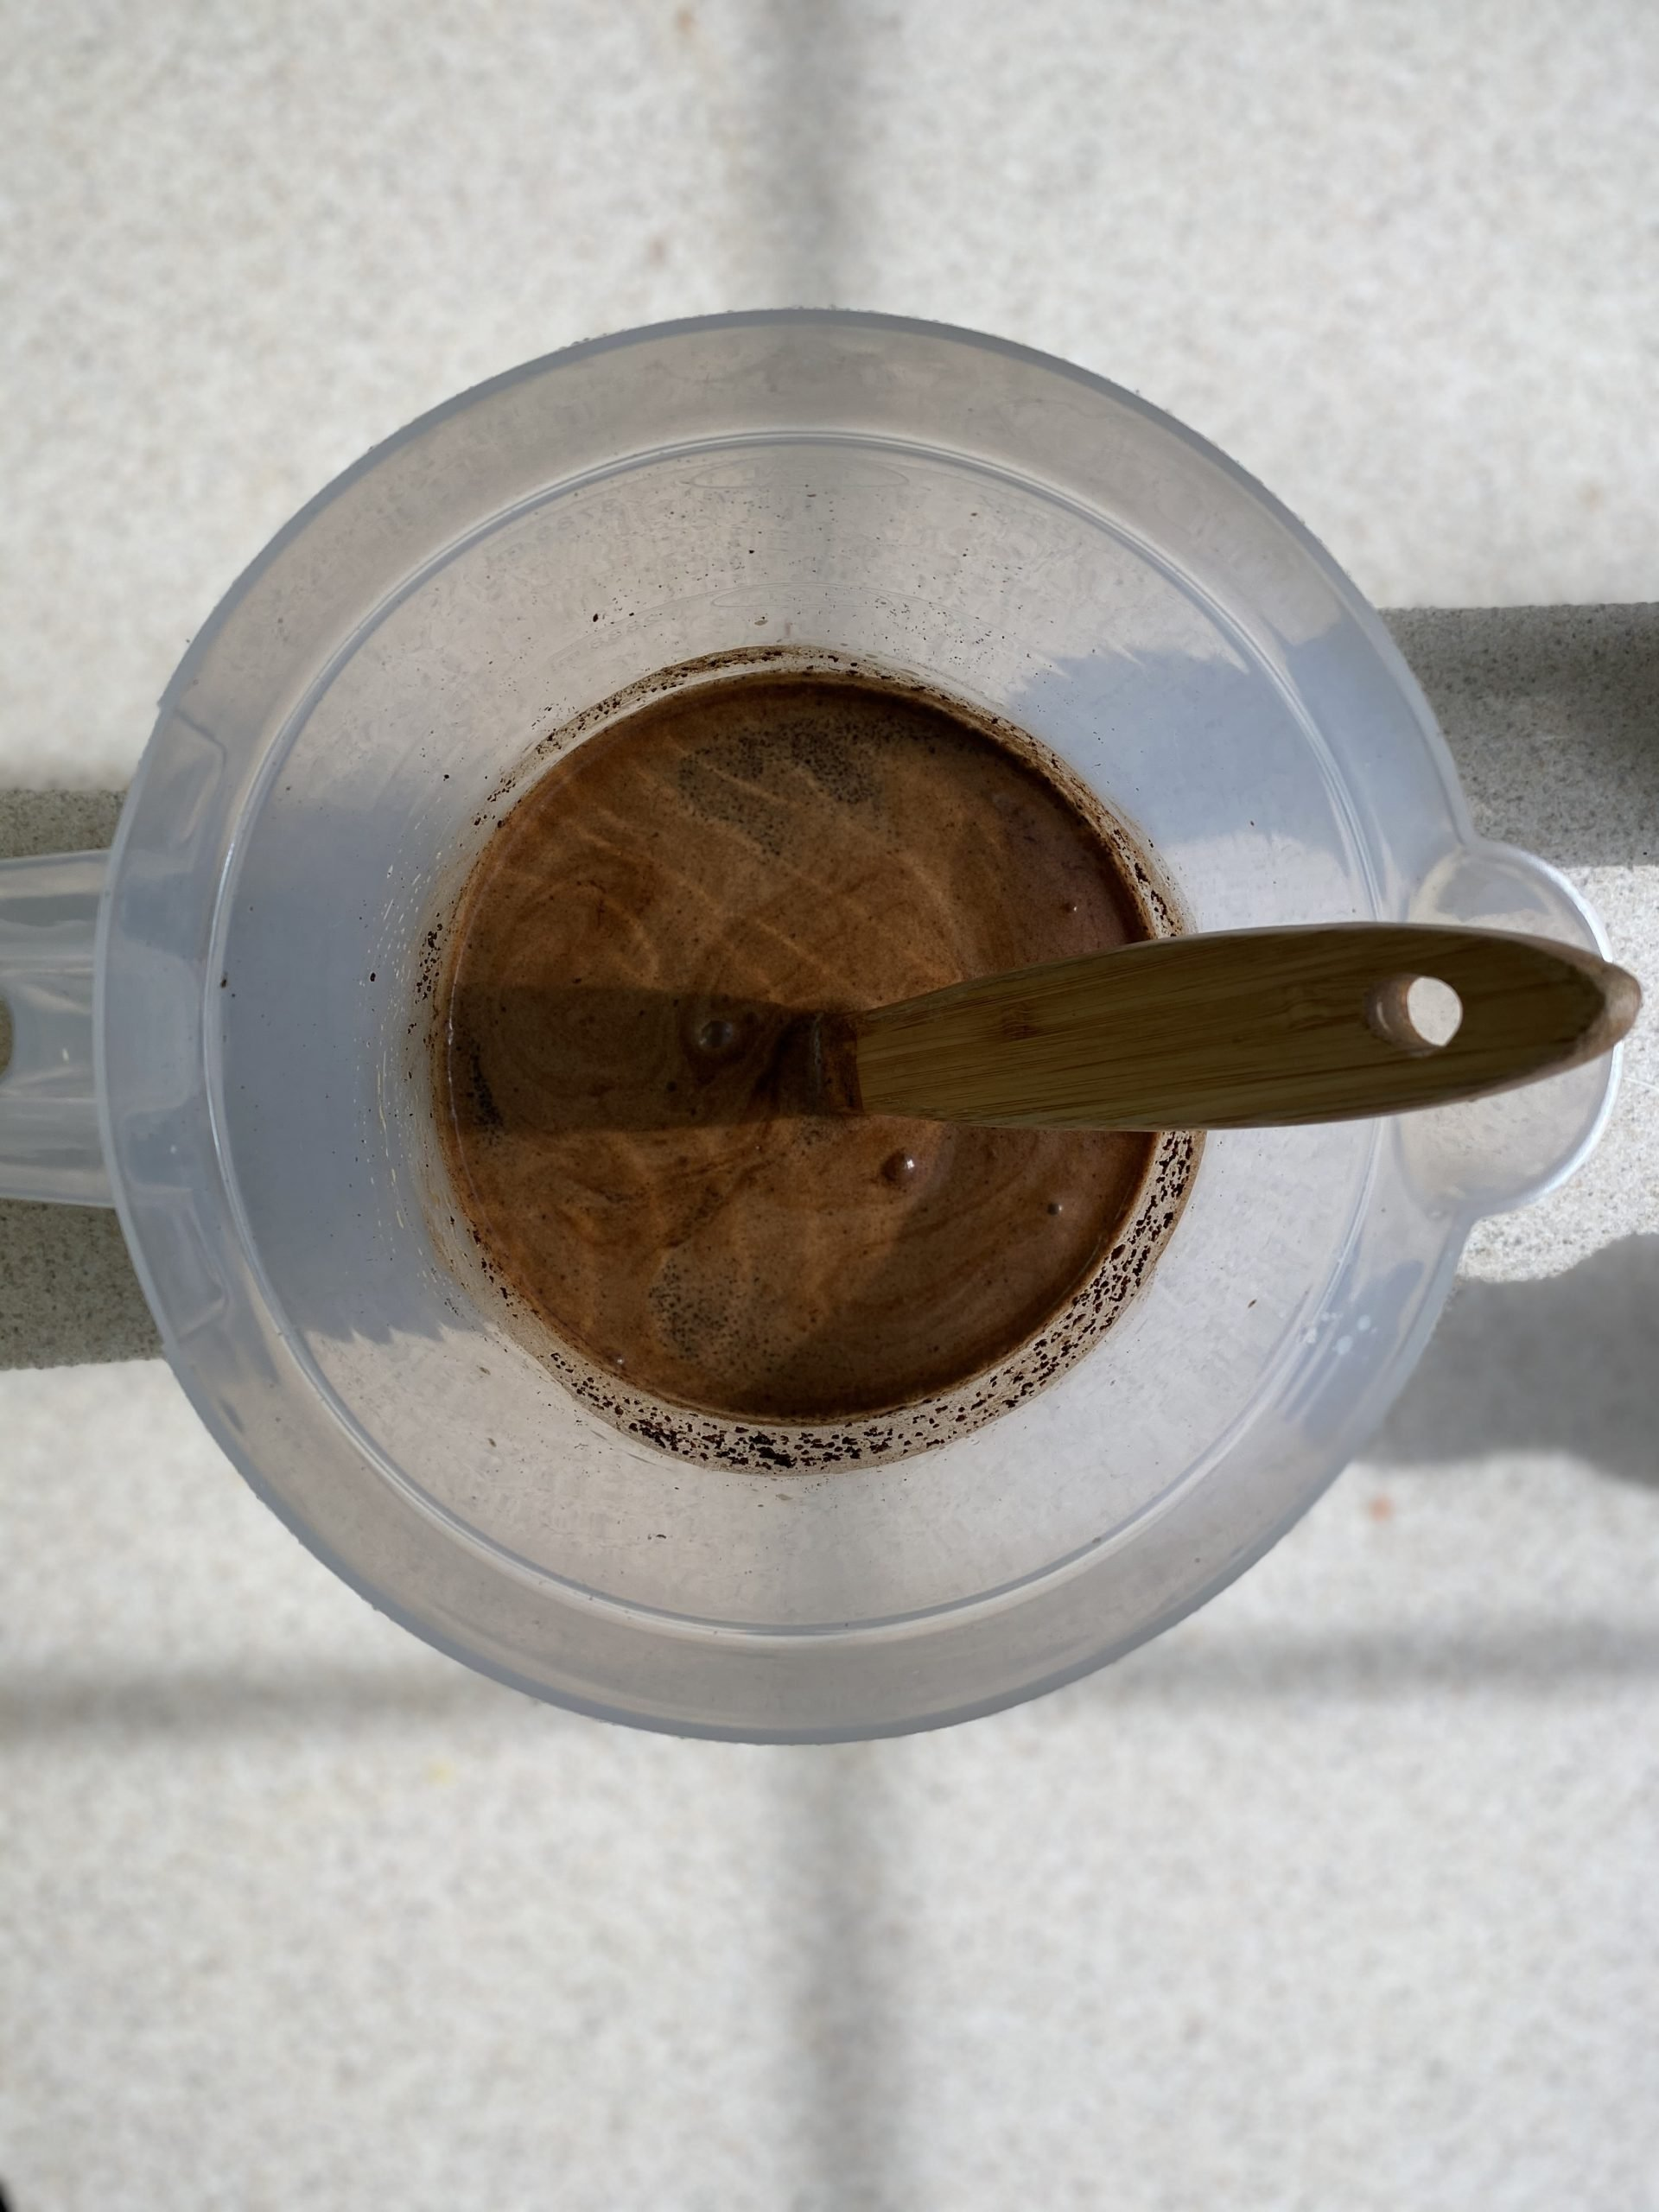 Preparing Coffee Grounds in a large container with a wooden spoon